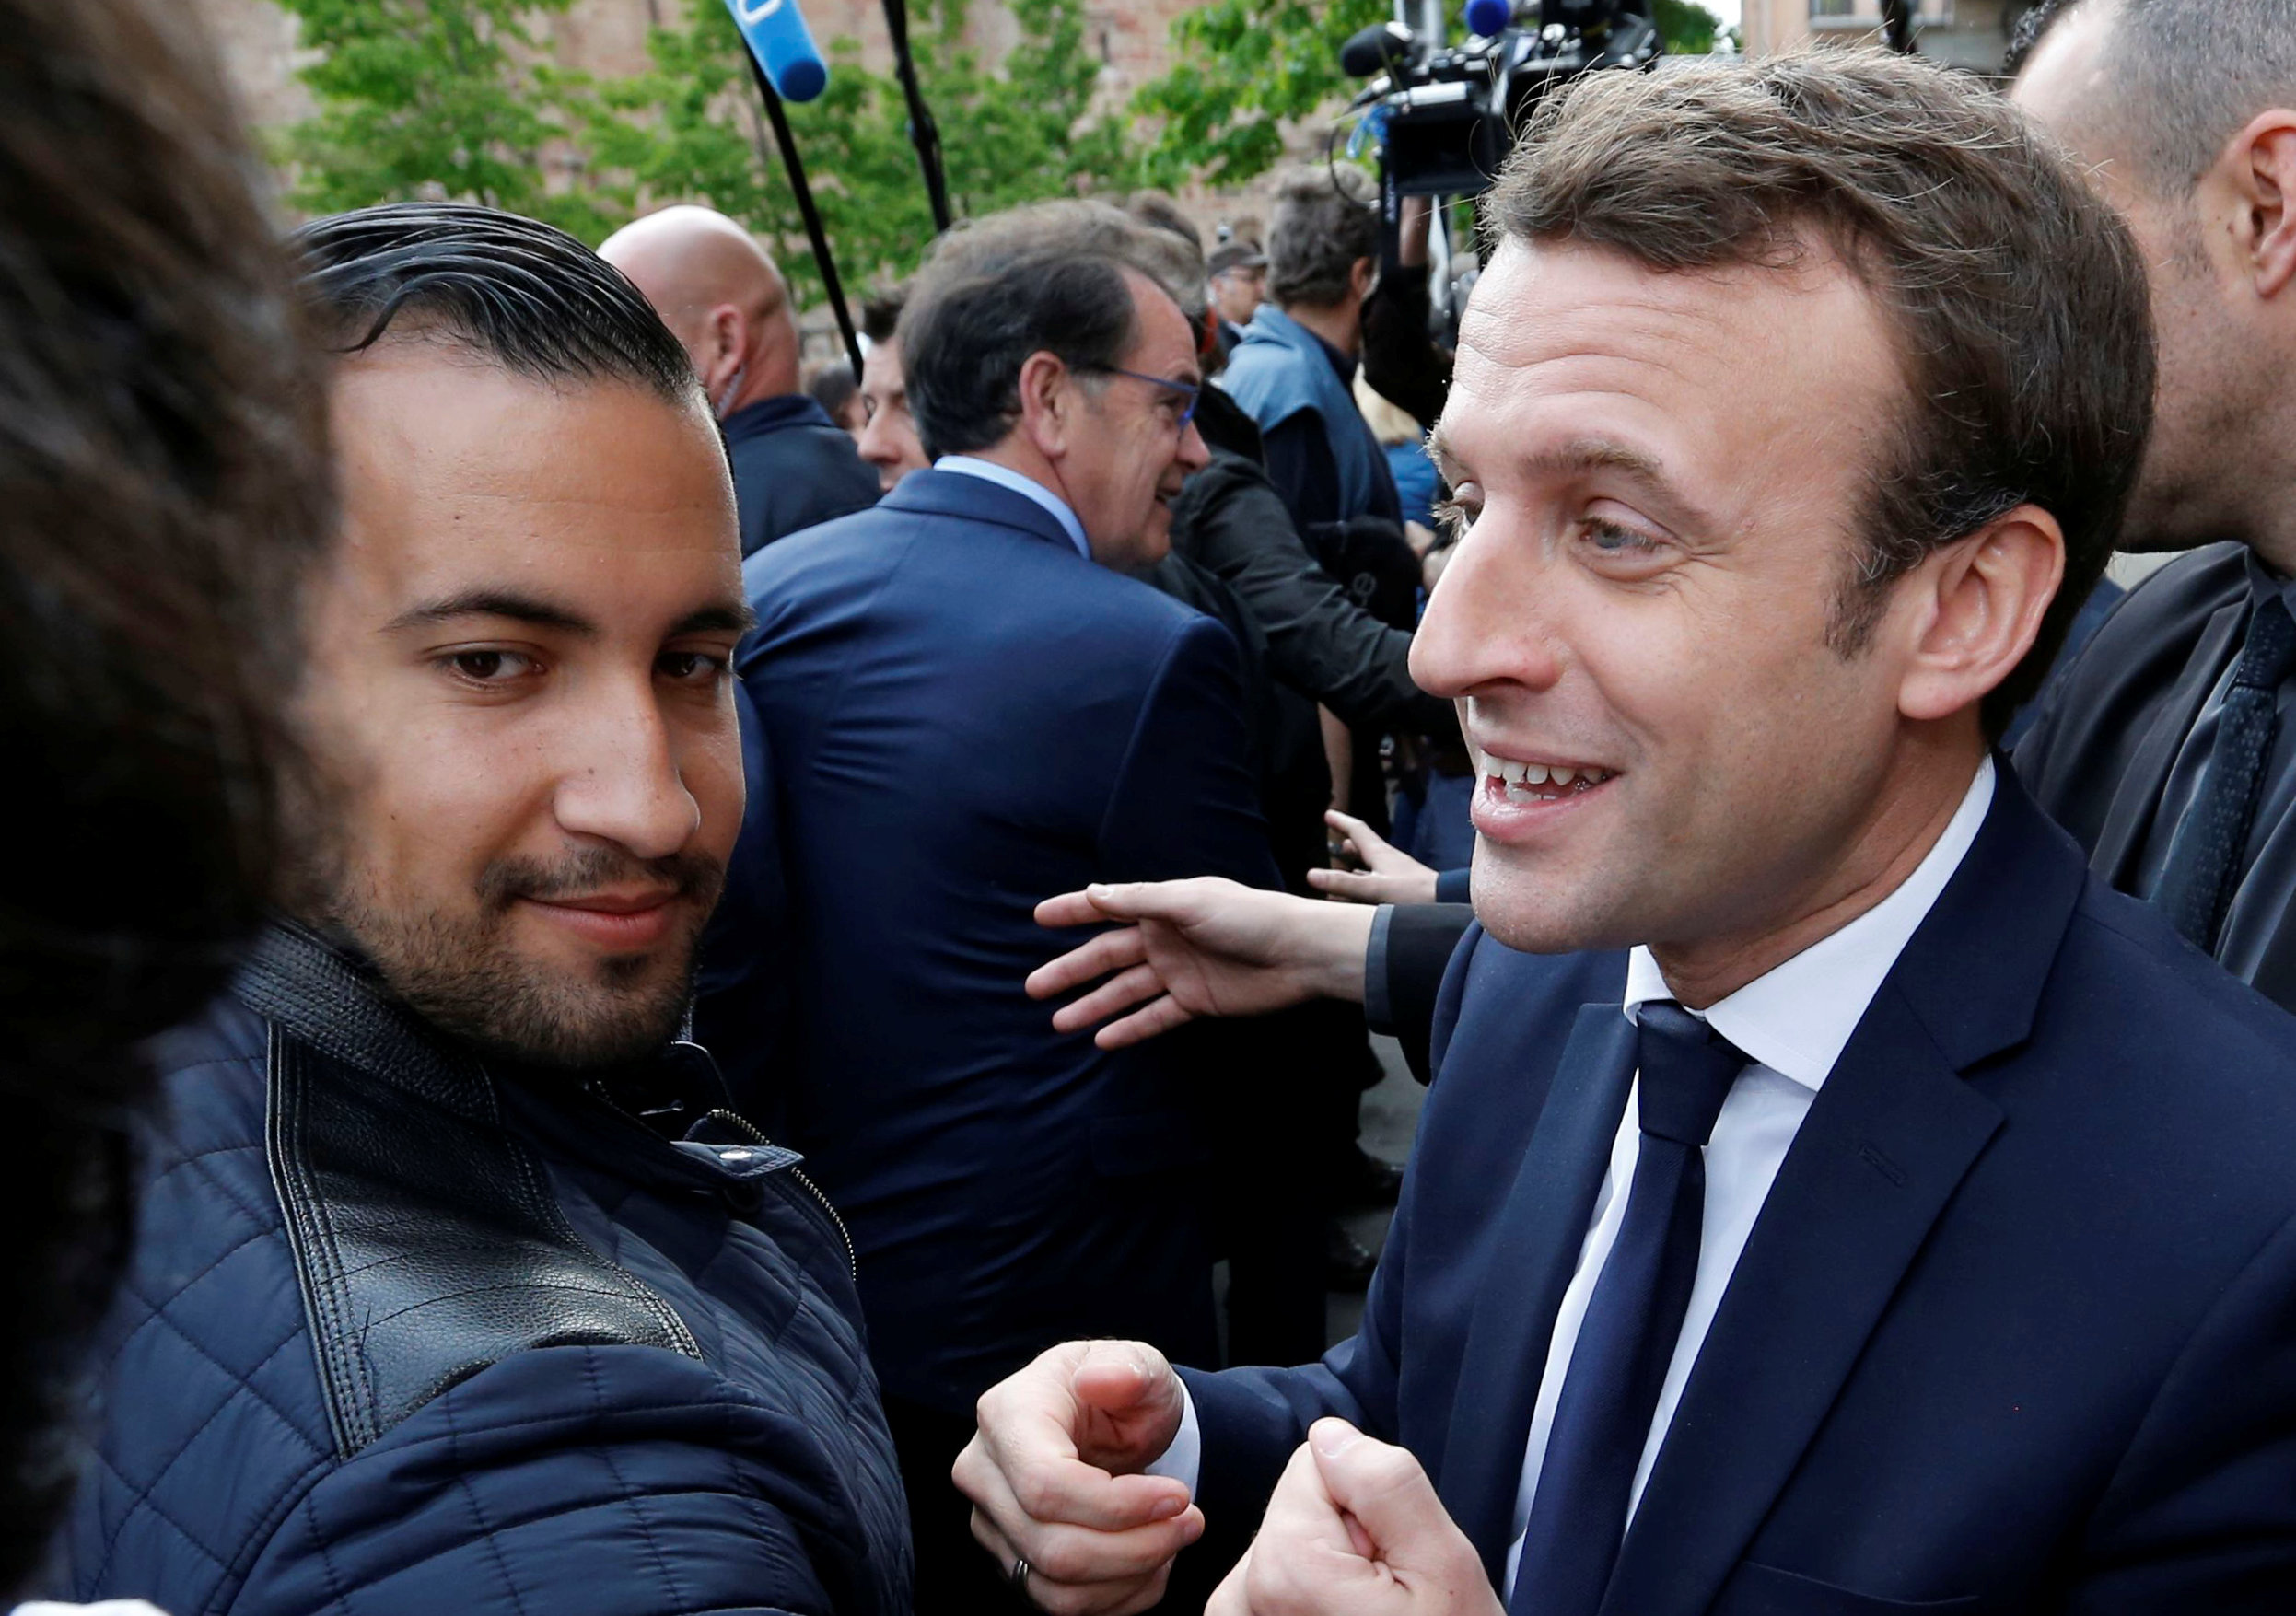 Emmanuel Macron, head of the political movement En Marche !, or Onwards !, and candidate for the 2017 presidential election, flanked by Alexandre Benalla, head of security, attends a campaign visit in Rodez